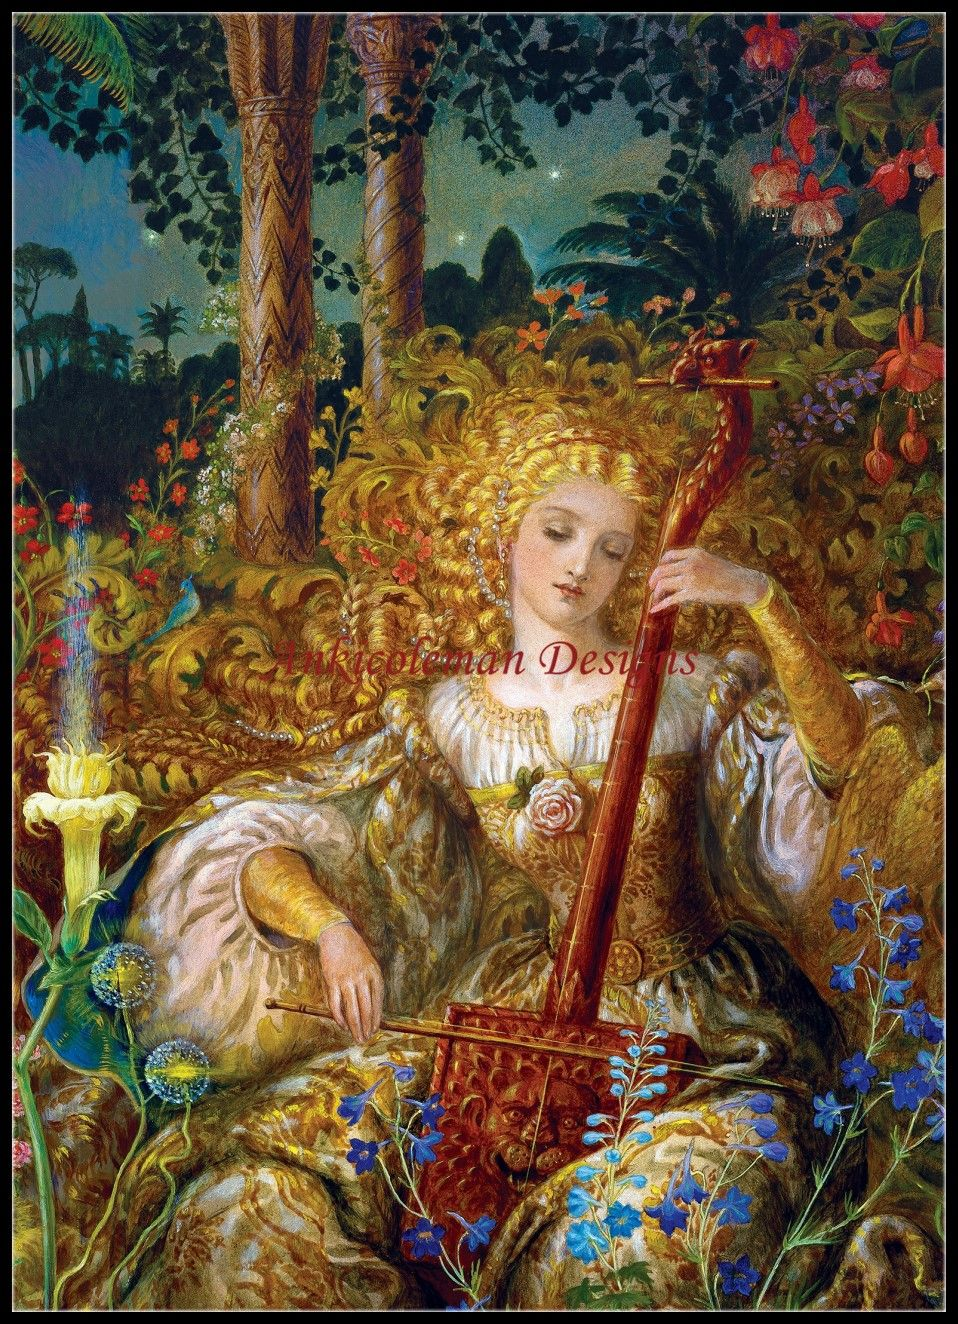 Needlework for embroidery DIY French DMC High Quality - Counted Cross Stitch Kit 14 ct Oil painting - Song for the Basilisk